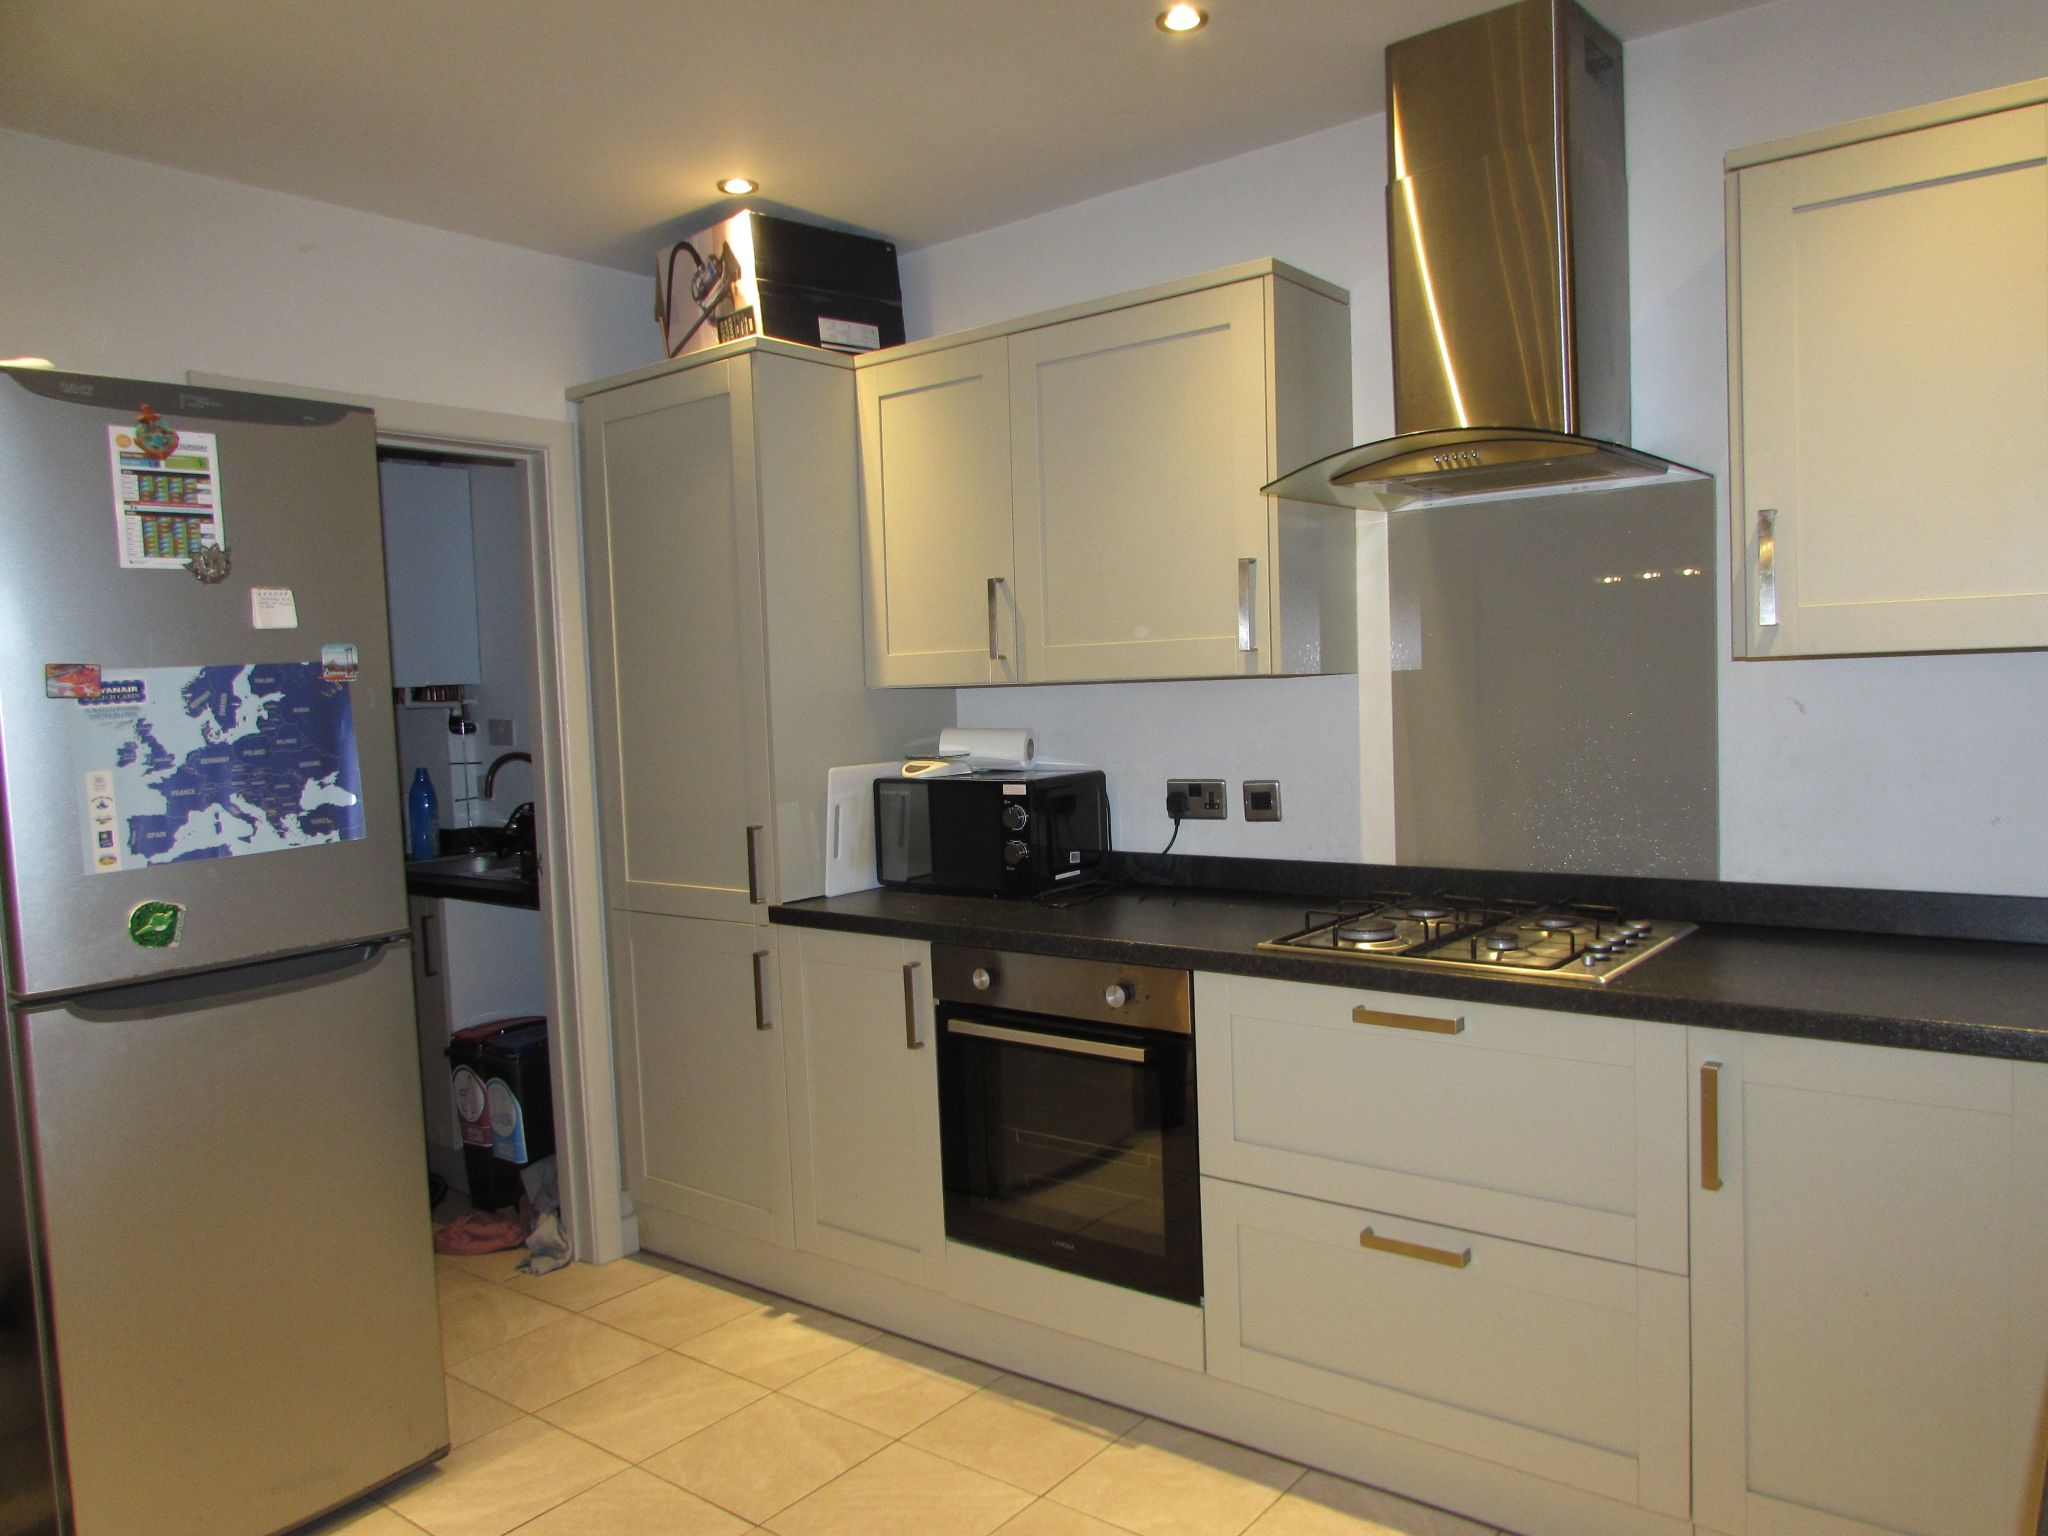 1 Bedroom Shared House To Rent - Photograph 3